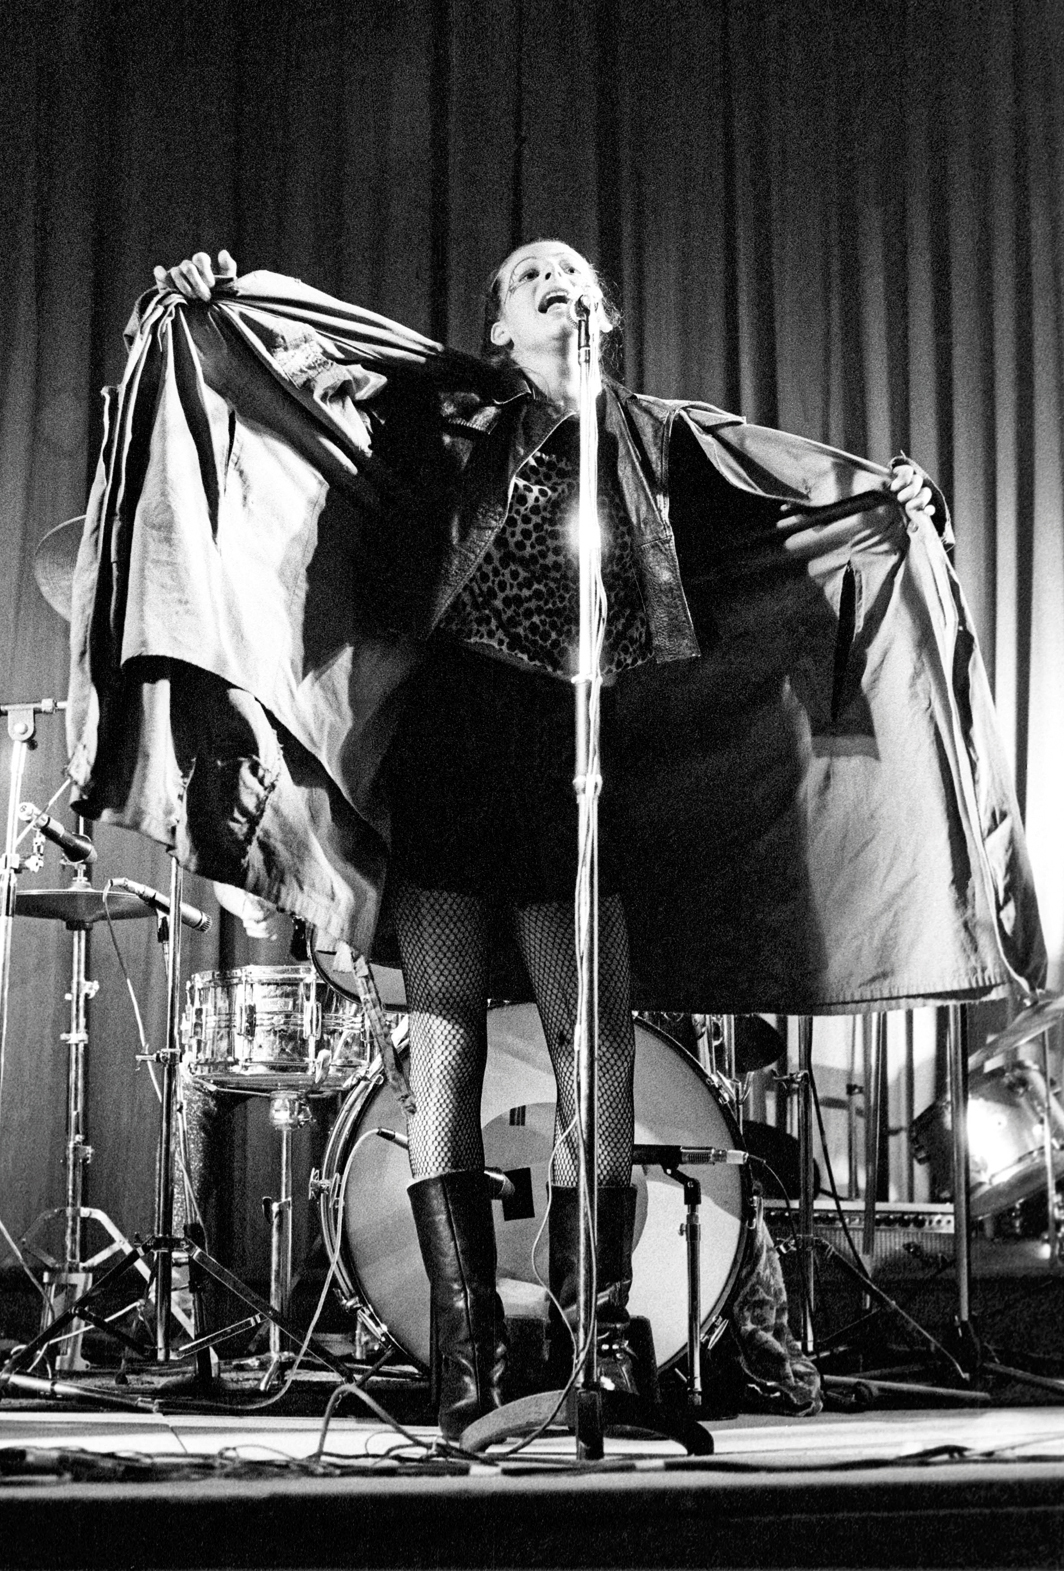 Ari Up performing with the Slits at the Coliseum, London, March 11, 1977. Photo: Ian Dickson/Shutterstock.